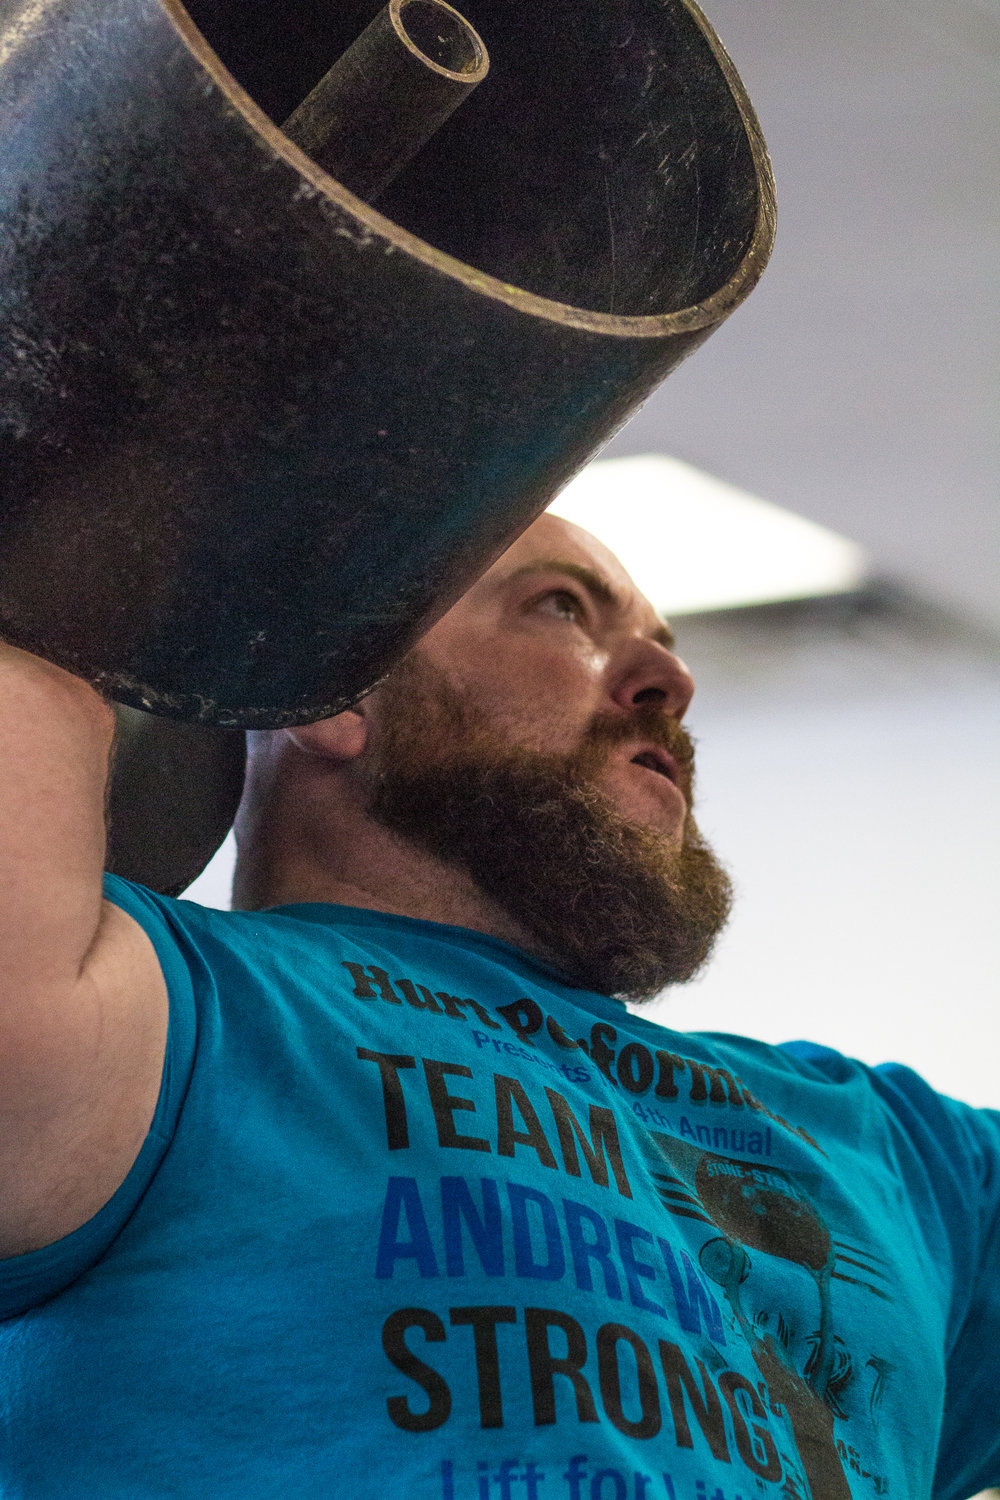 hurt-performance-4th-annual-little-viking-charity-washingtonville-new-york-strongman-eveyrdaylifters-vp (215 of 348).jpg